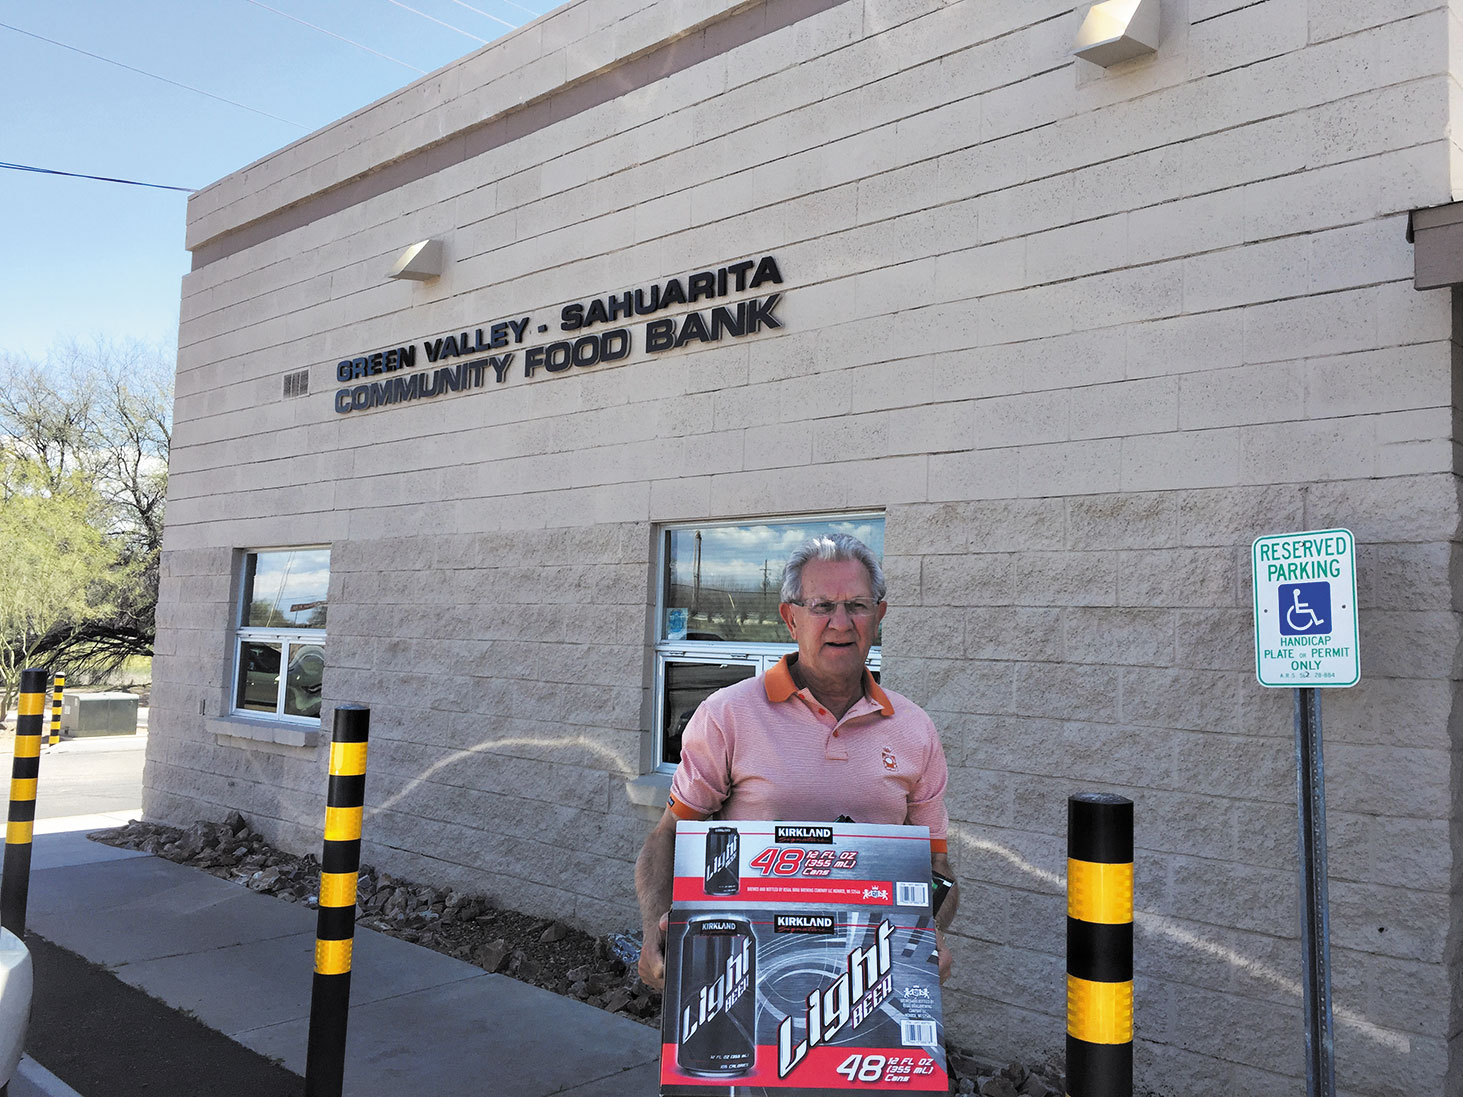 Harry Sawchuk proudly delivers part of the Canadian Club at Quail Creek donation to the Green Valley - Sahuarita Food Bank.